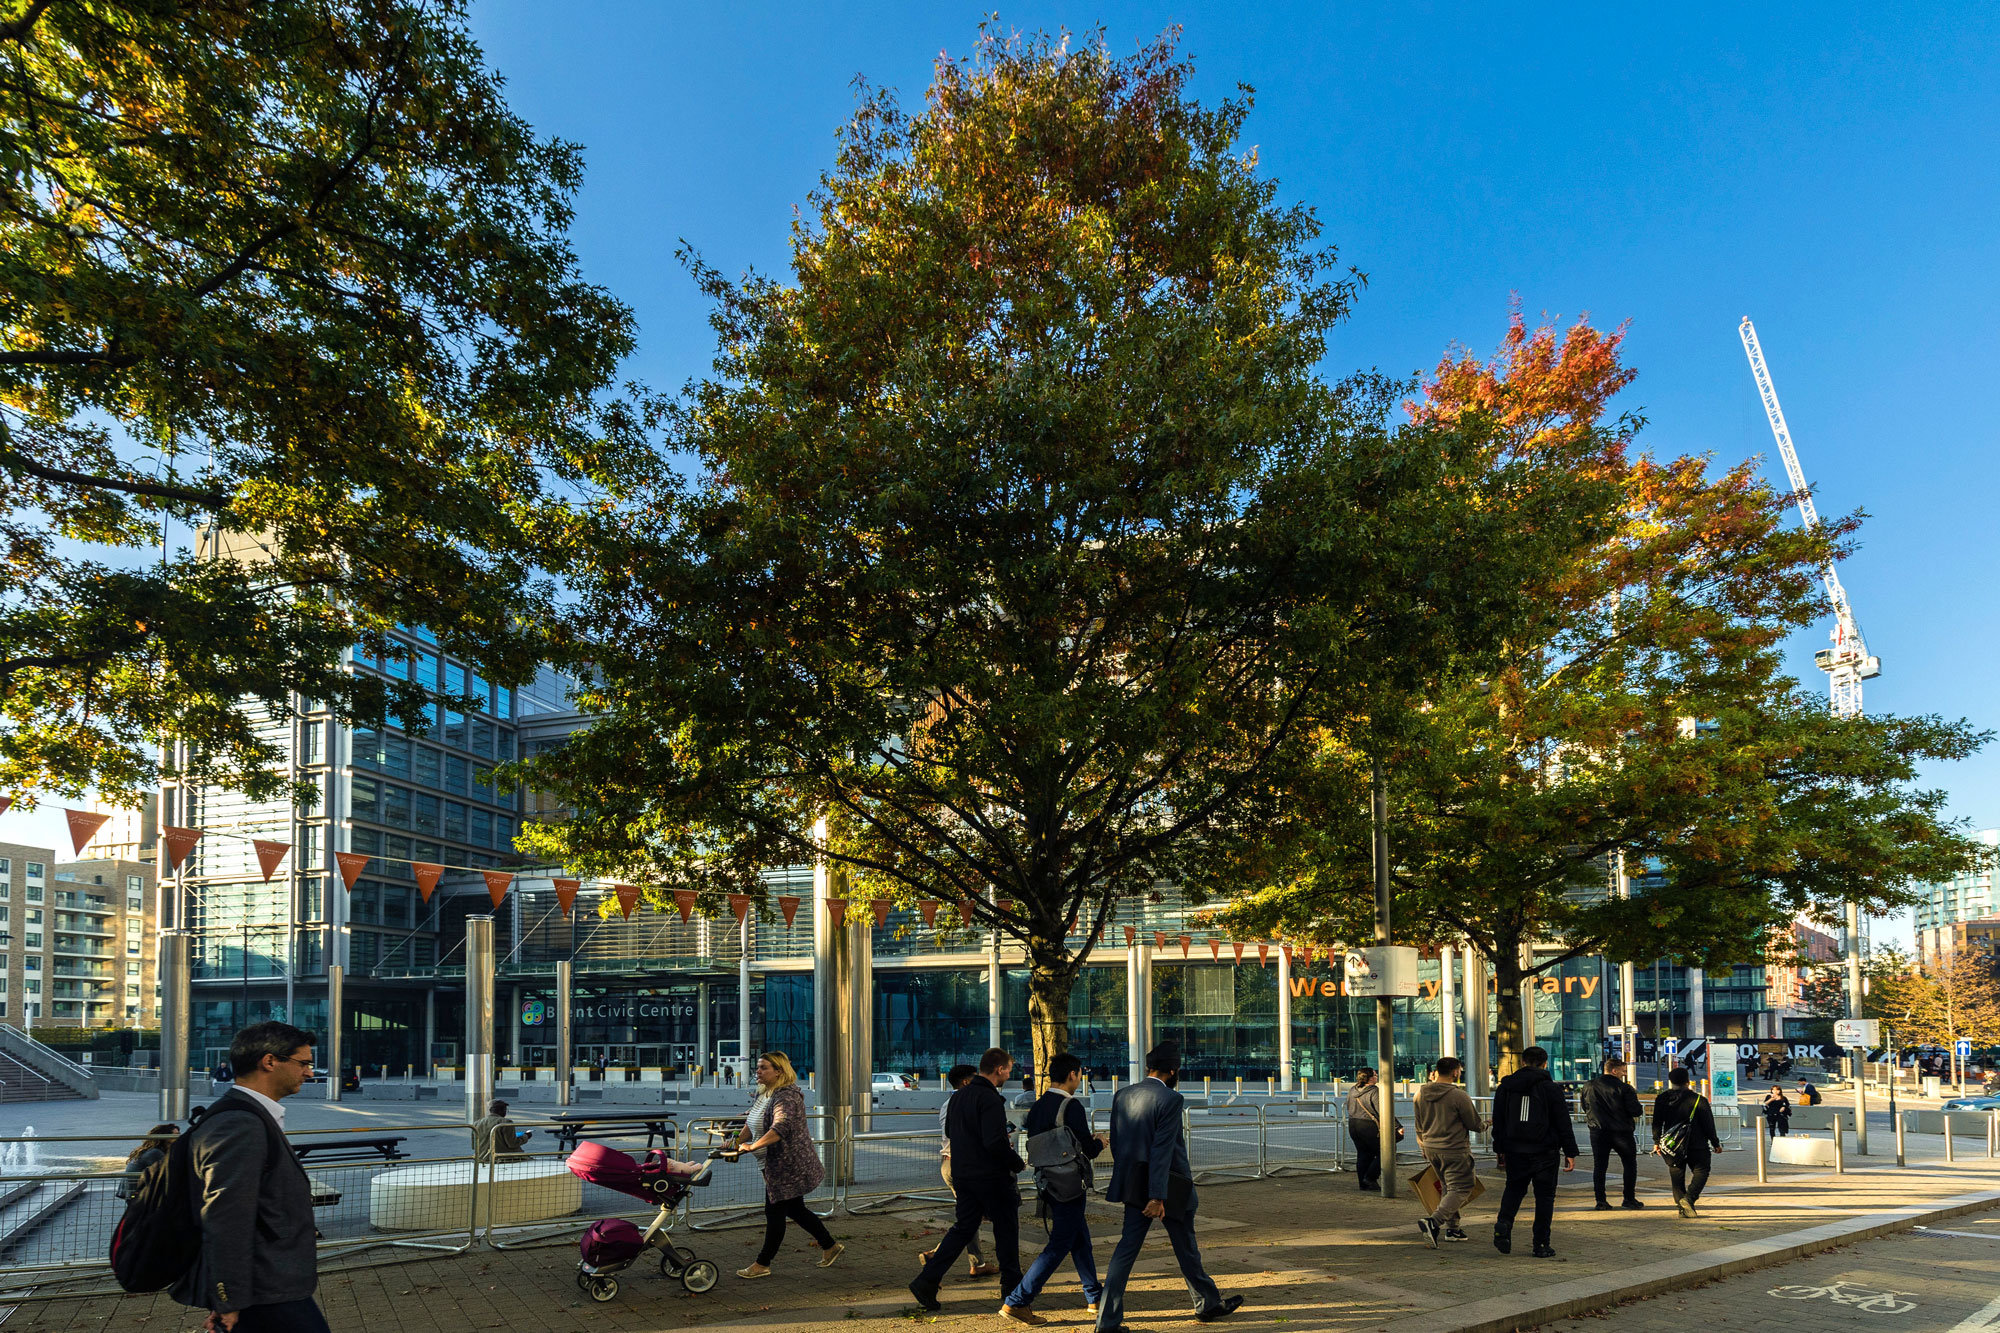 Brent has its council offices nearby, with library and civic centre in a single building